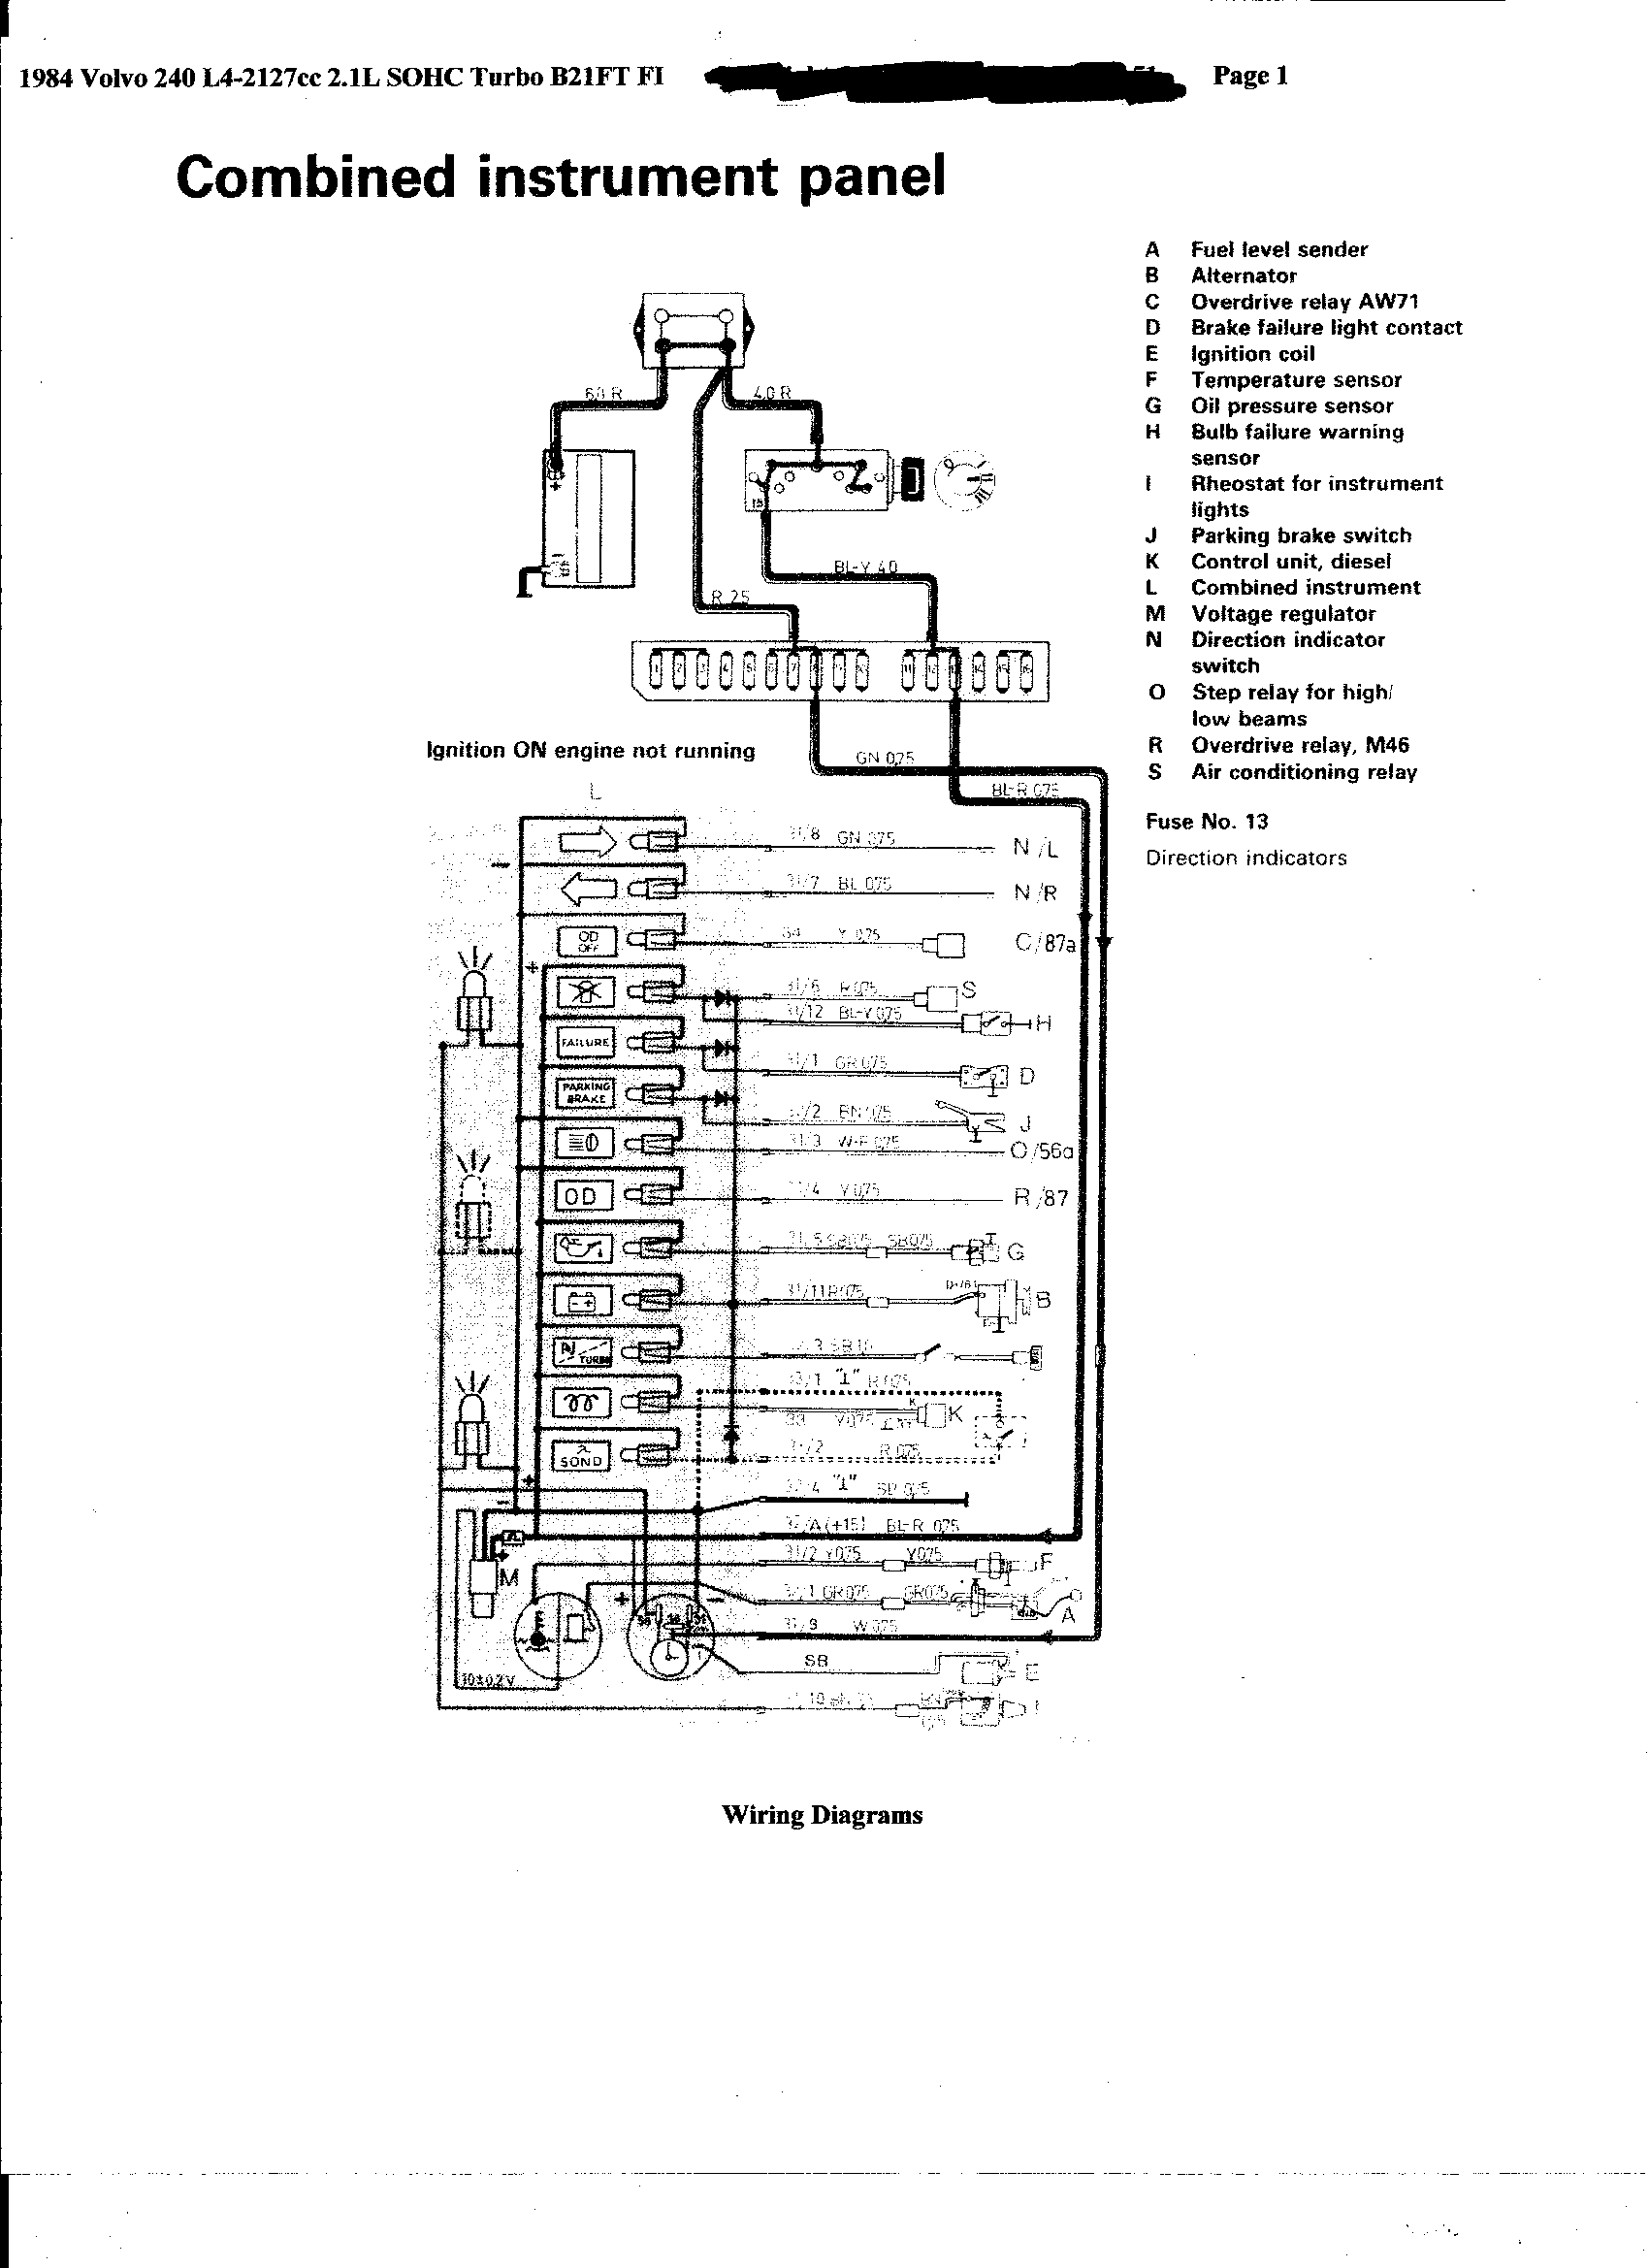 1985 porsche 944 fuse box diagram